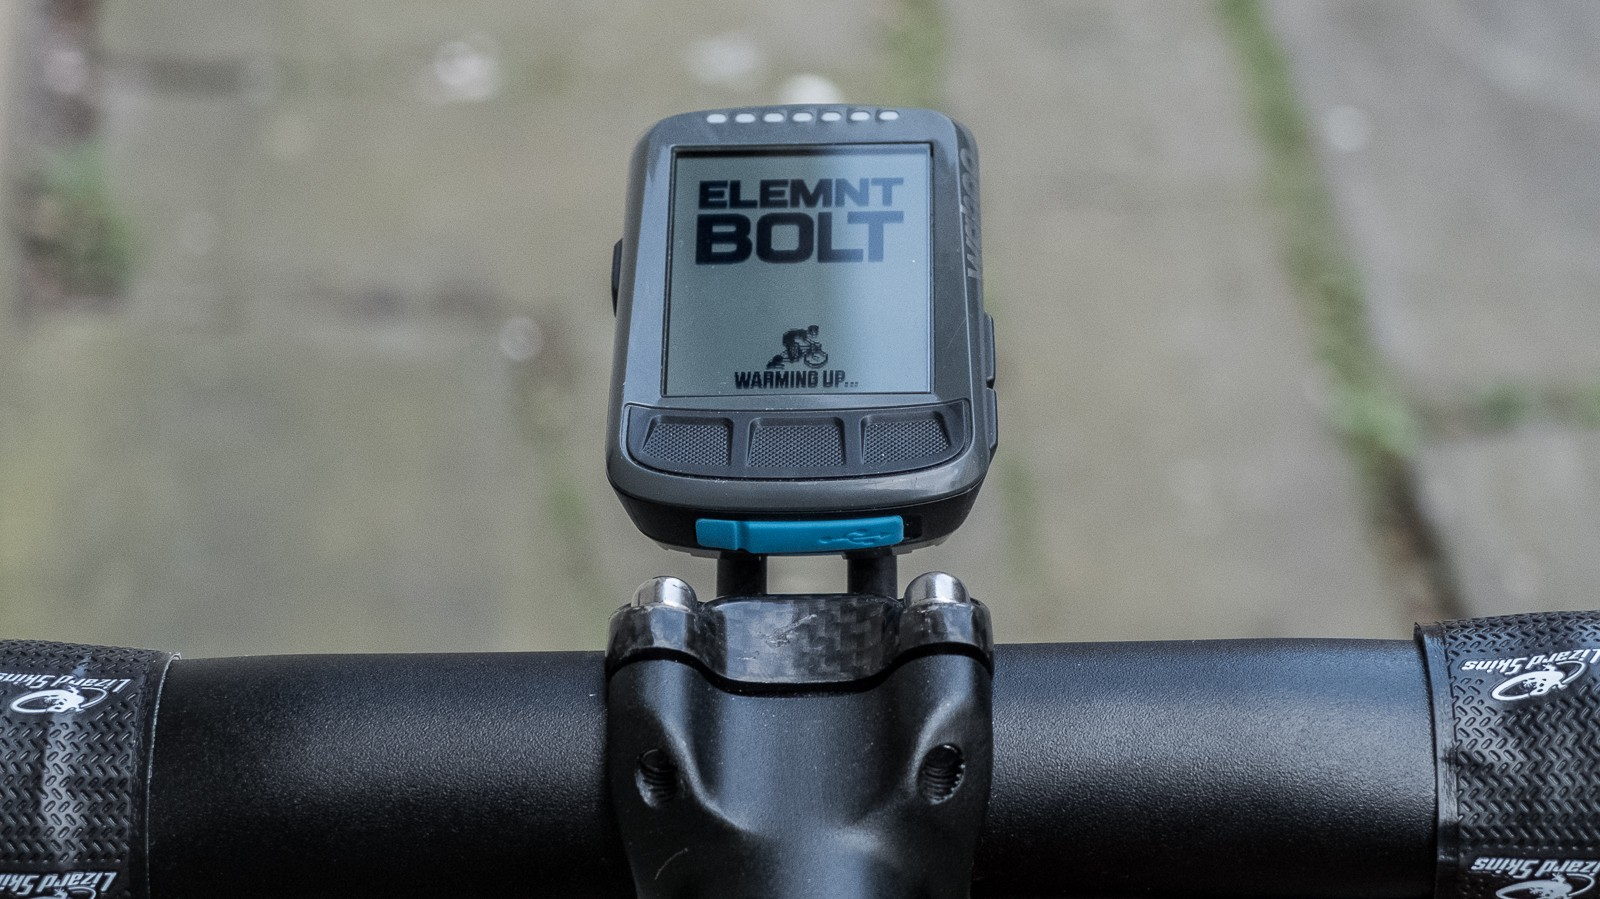 Swapping the Garmin mounting plate out for the included Wahoo plate was equally simple